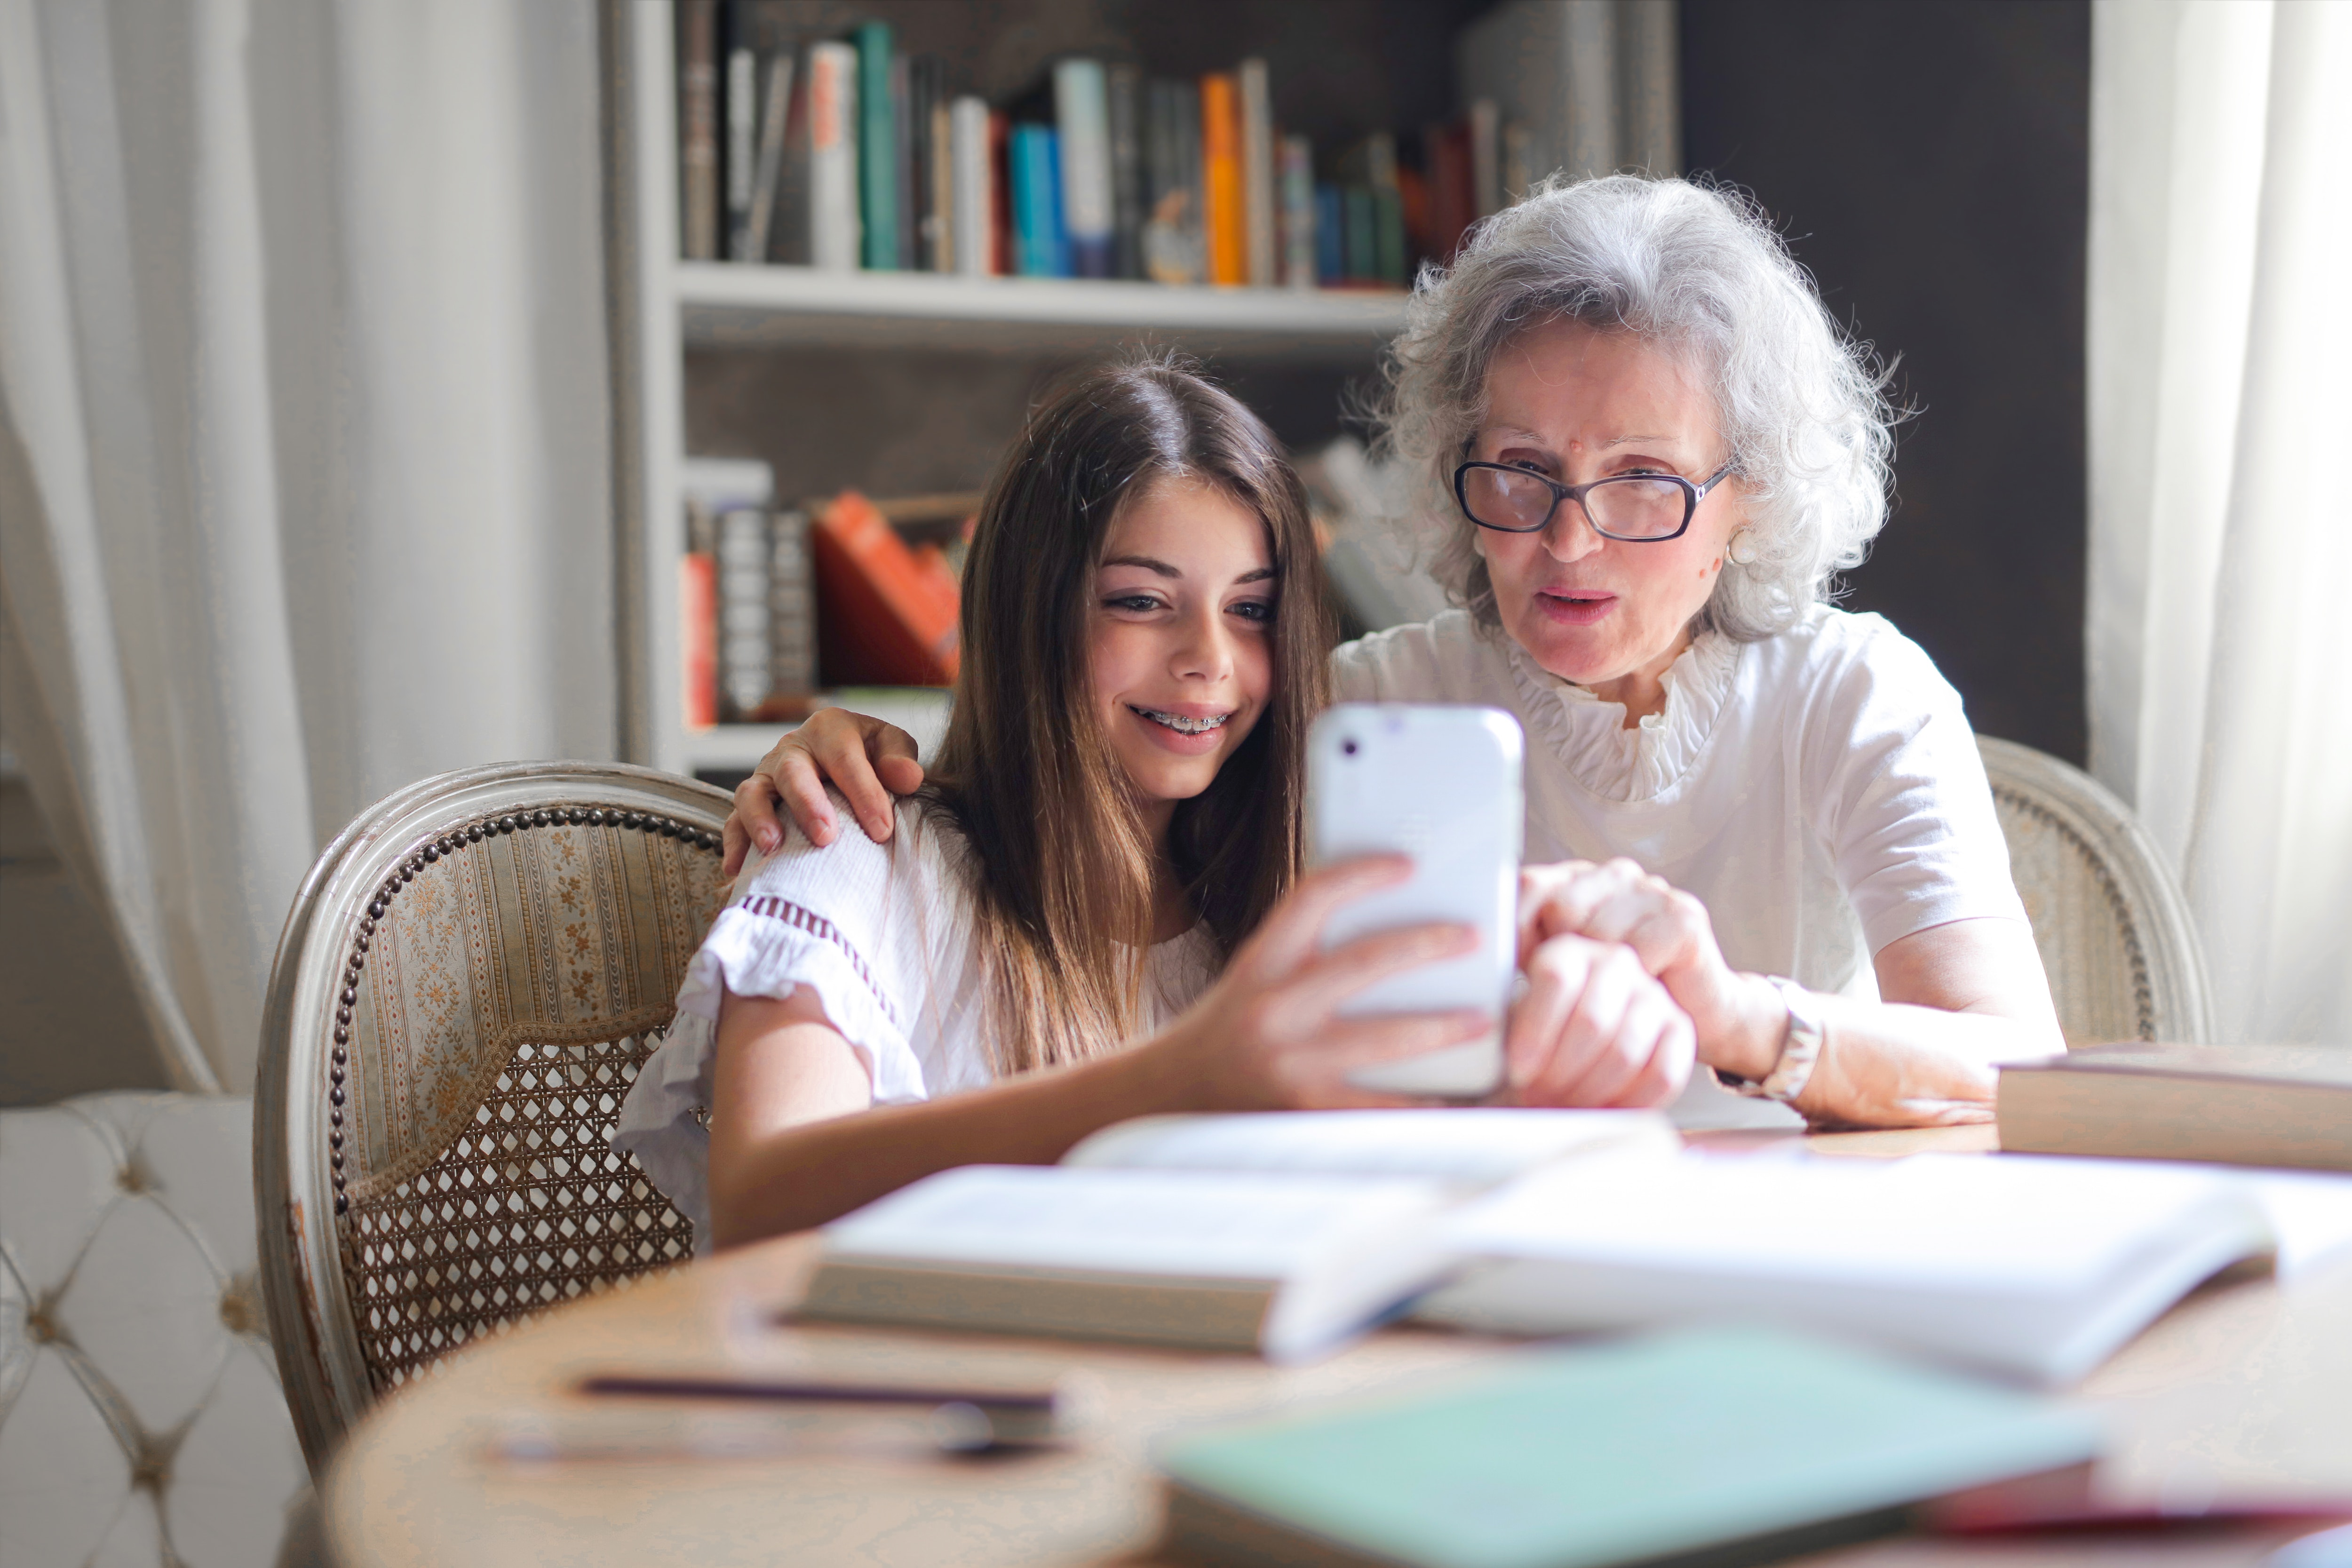 Grandchild helping her grandmother with her phone